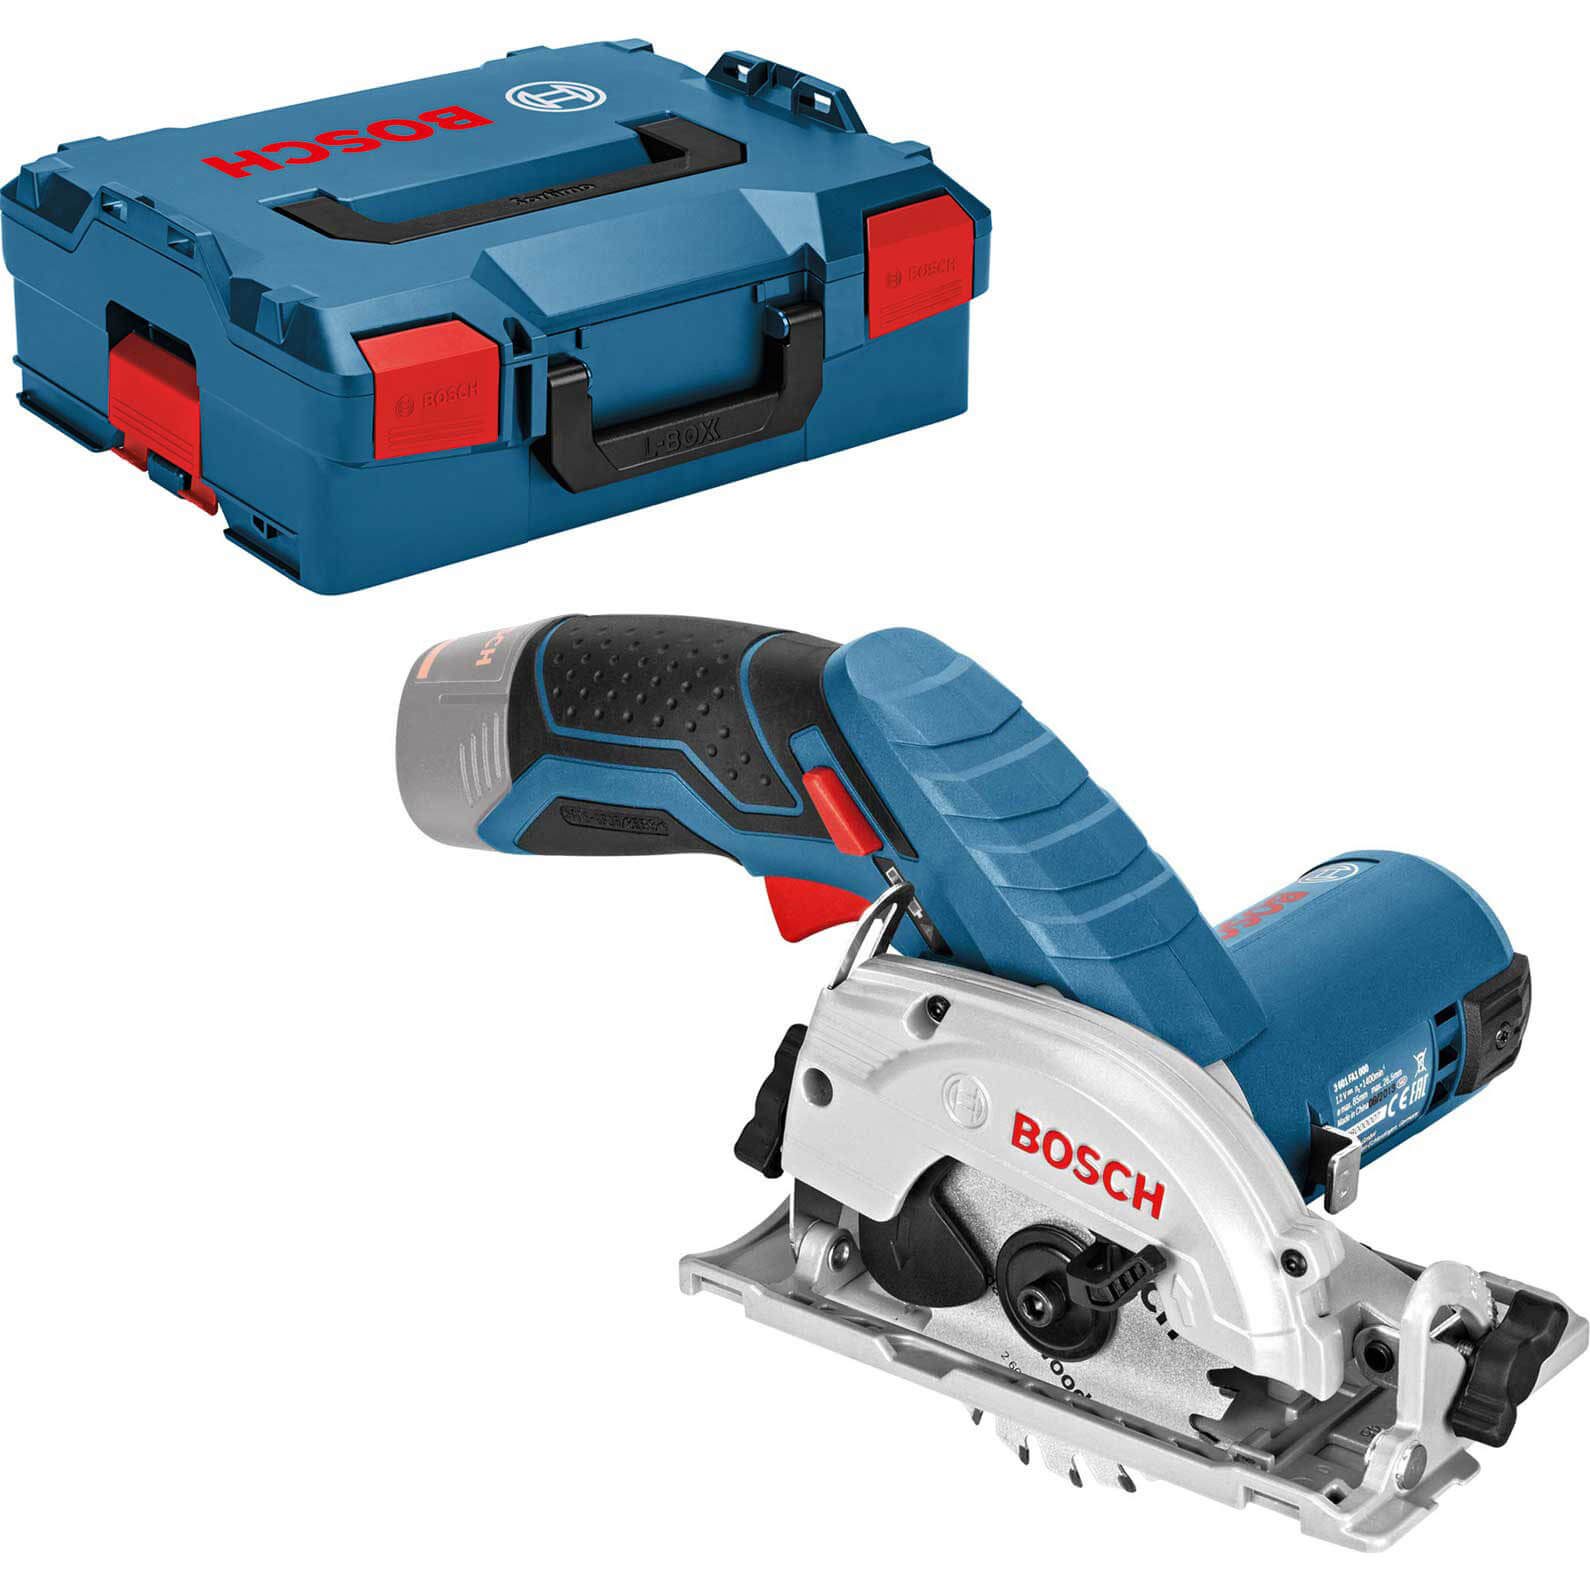 Image of Bosch GKS 12V-26 12v Cordless Circular Saw 85mm No Batteries No Charger Case